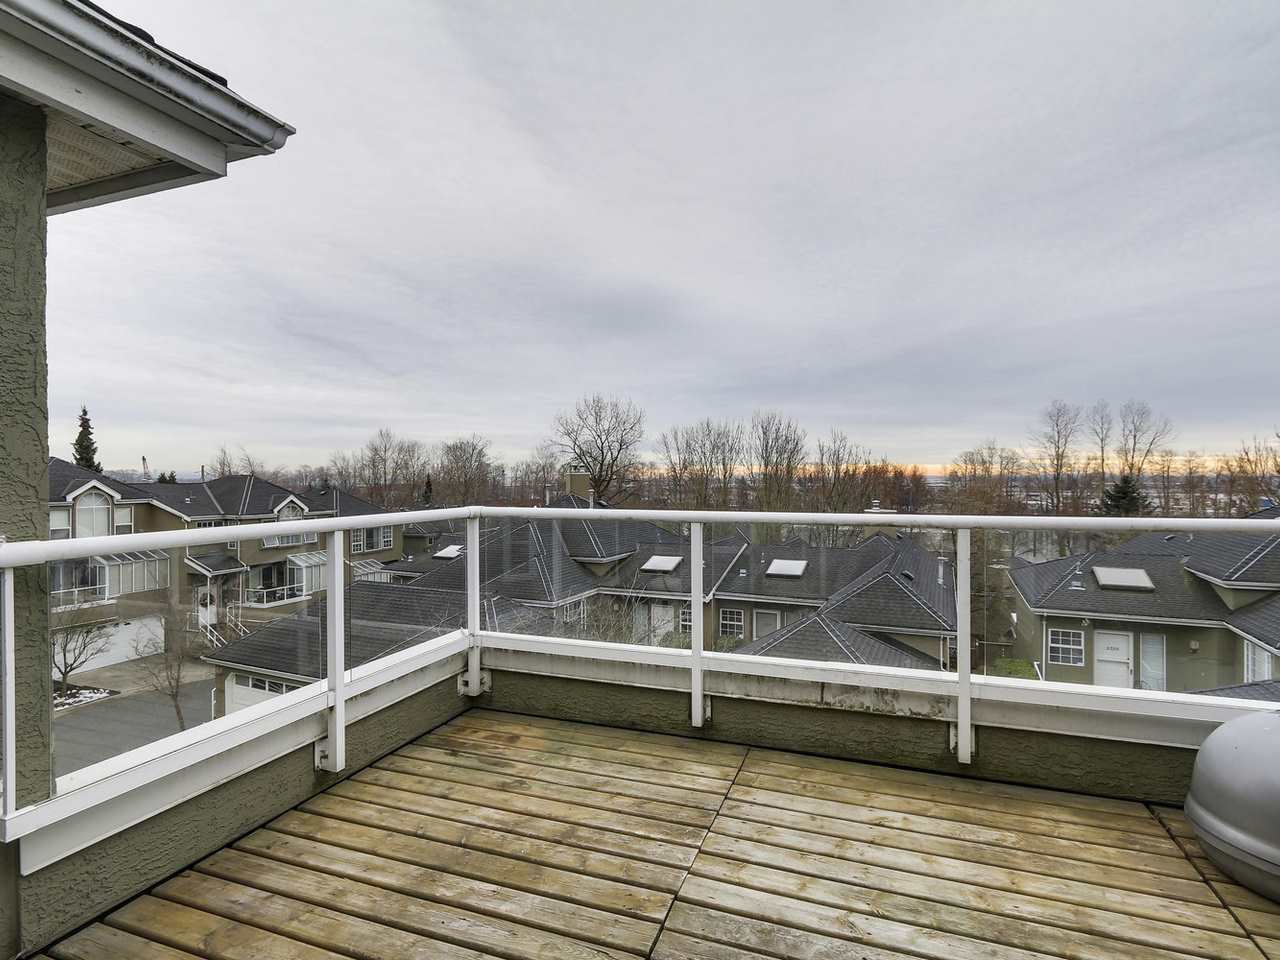 Photo 10: Photos: 2345 QUAYSIDE COURT in Vancouver: Fraserview VE Townhouse for sale (Vancouver East)  : MLS®# R2154138